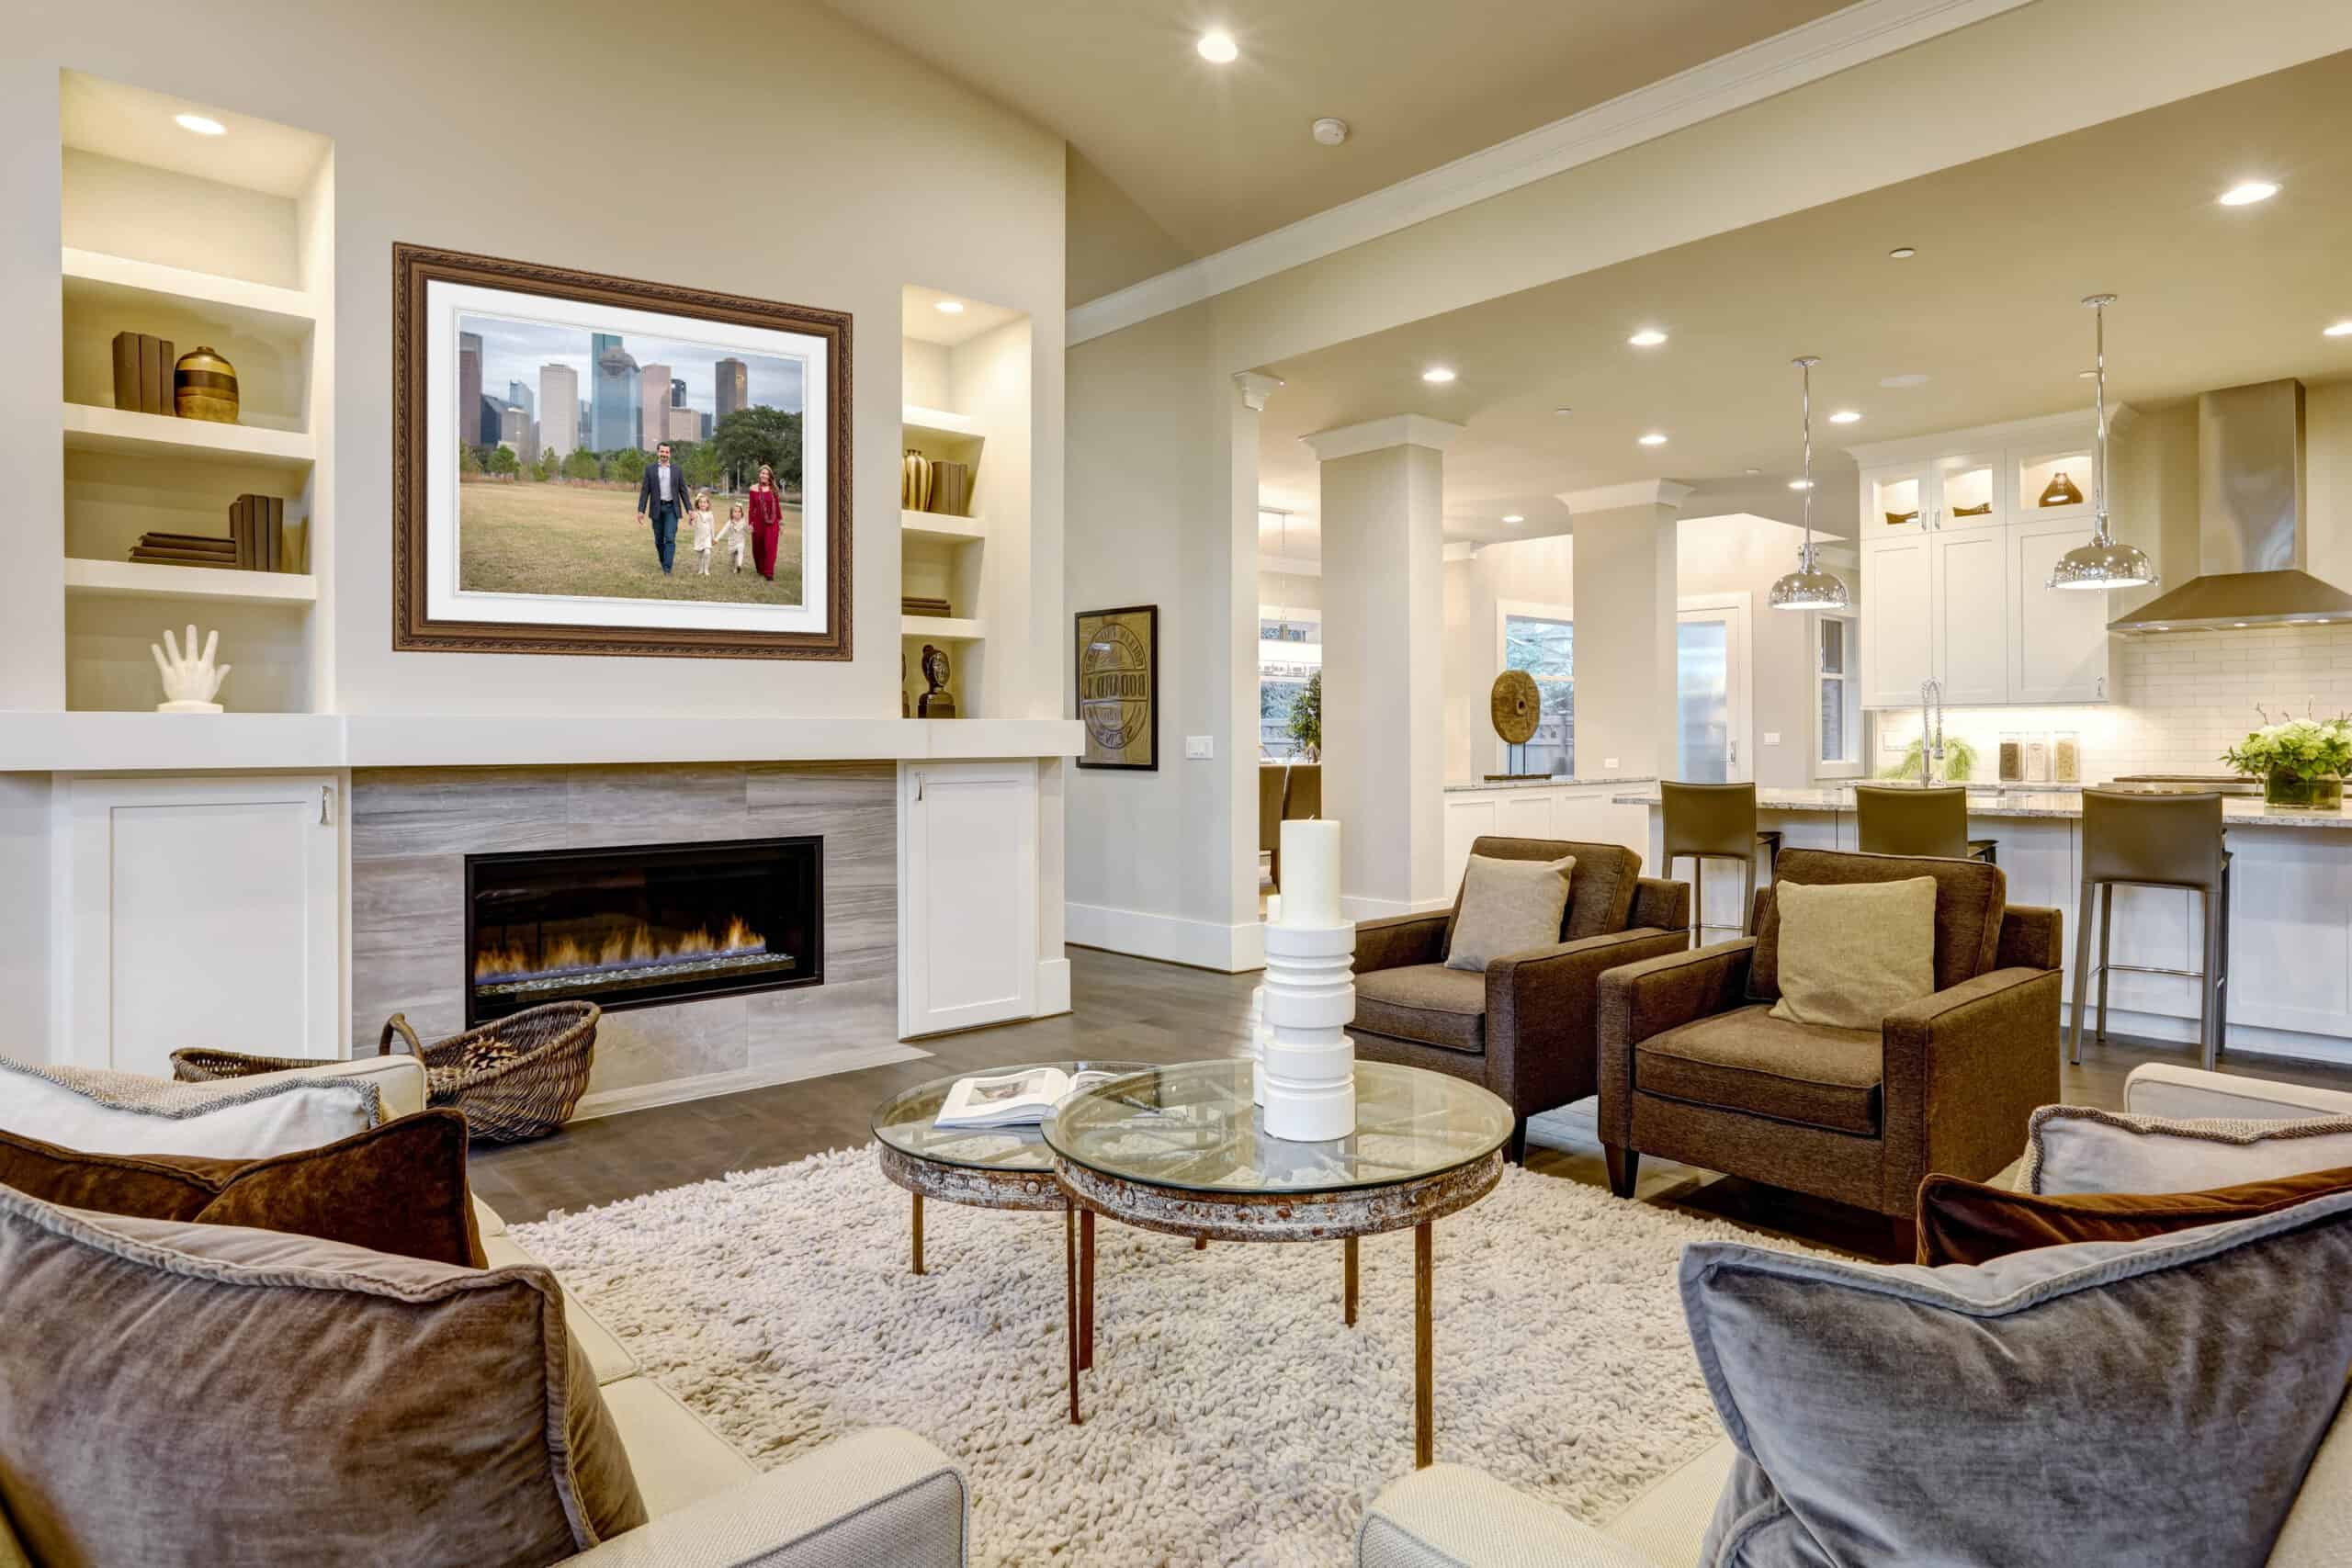 Chic living room design in natural colors and open plan.